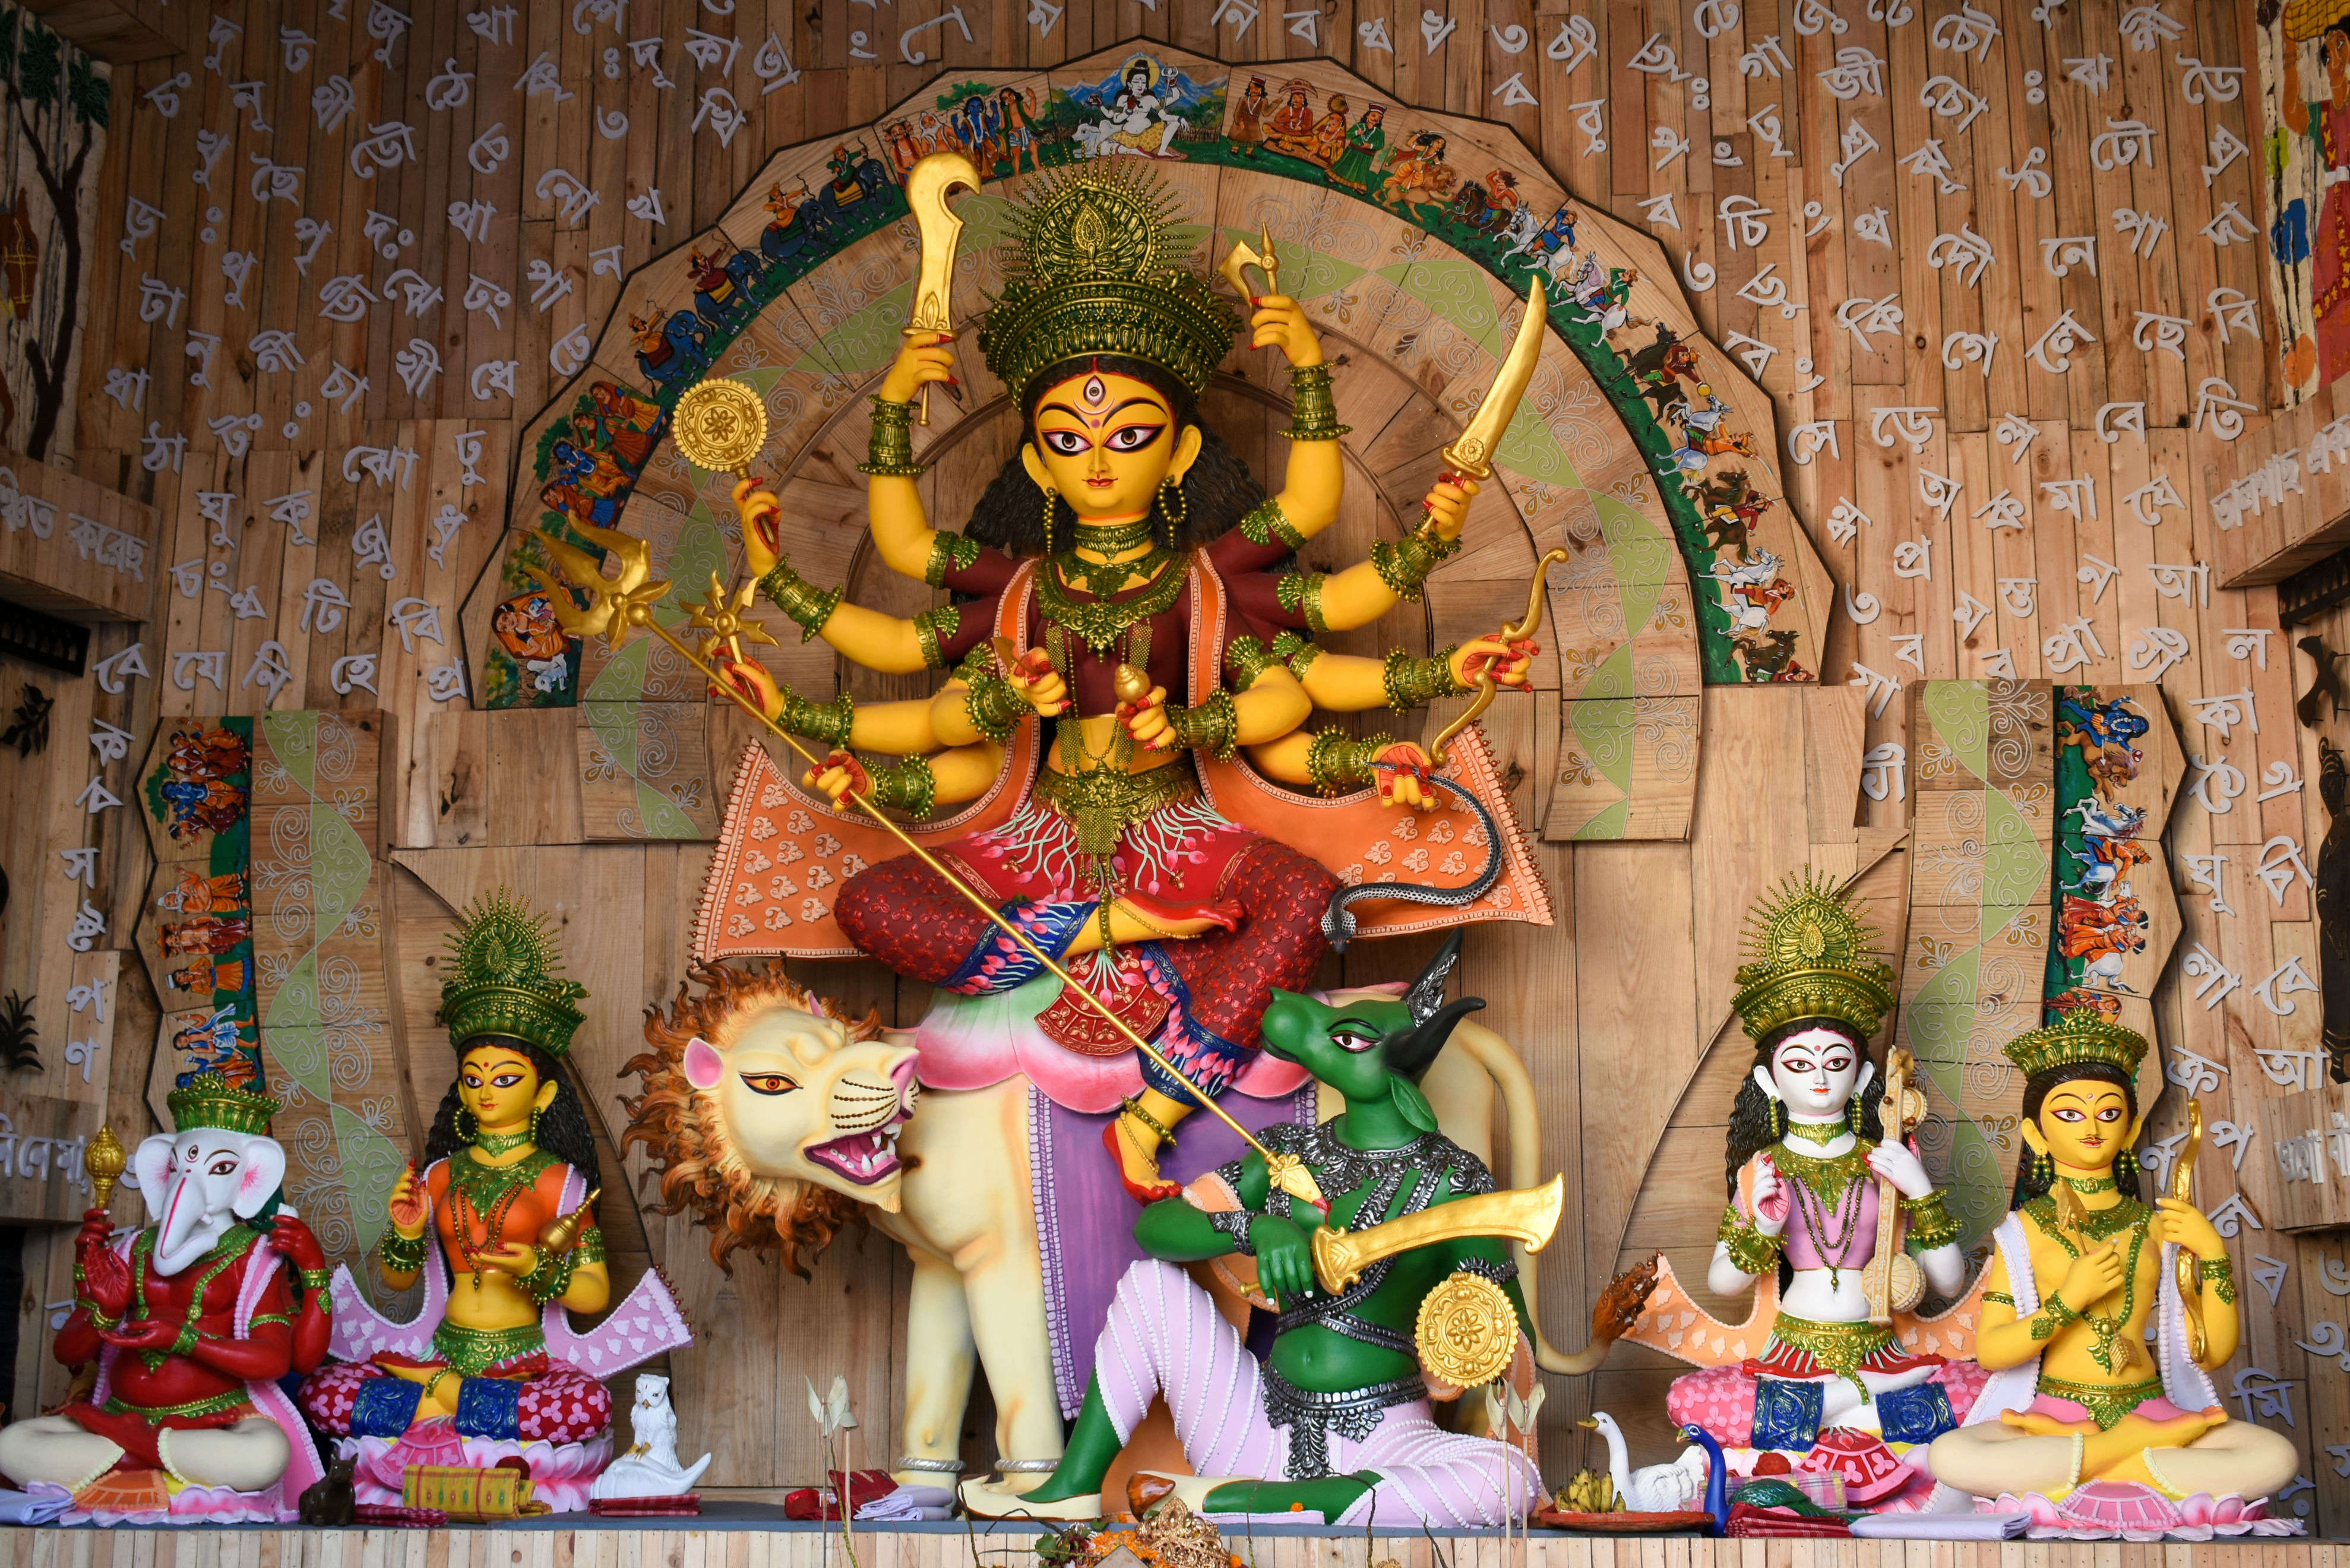 CR Park Durga Puja has something special for visitors this year